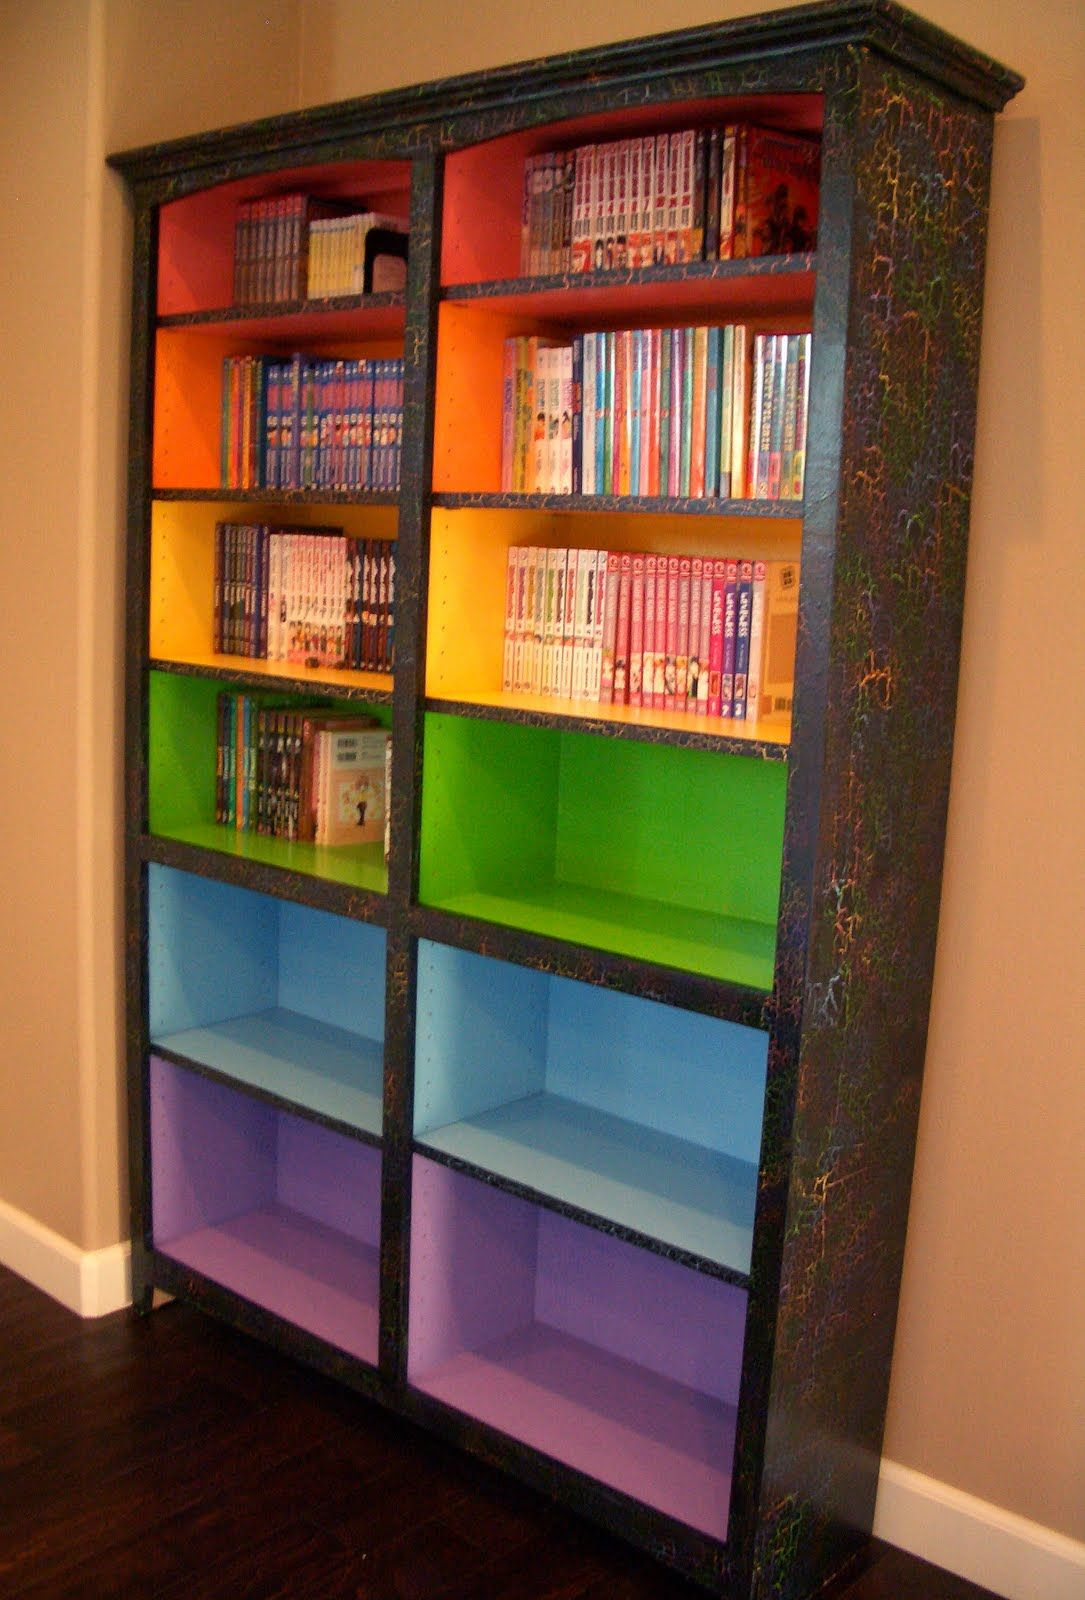 I don't need reading levels indicated but I think this would be a great  look for the shelves and I could organize by subject matter! Paint colored  shelves ... - Perfect Idea For Organizing A 'leveled Book Room' For Staff